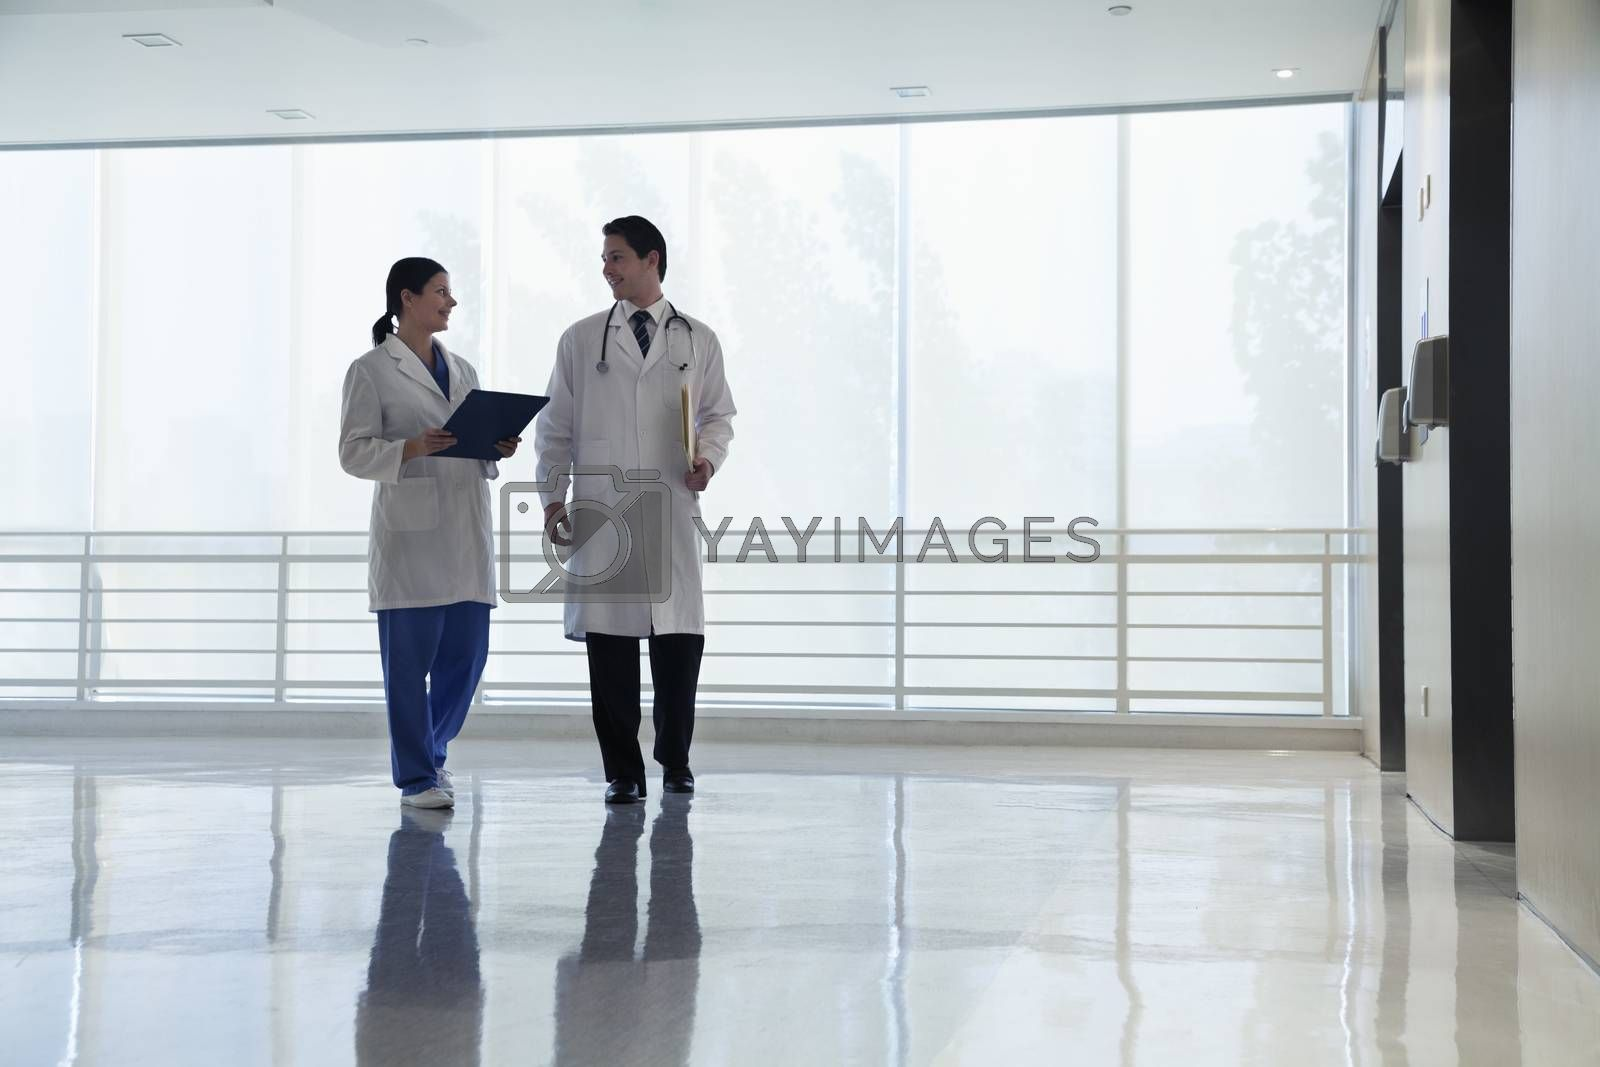 Two doctors walking and smiling in the hospital, full length